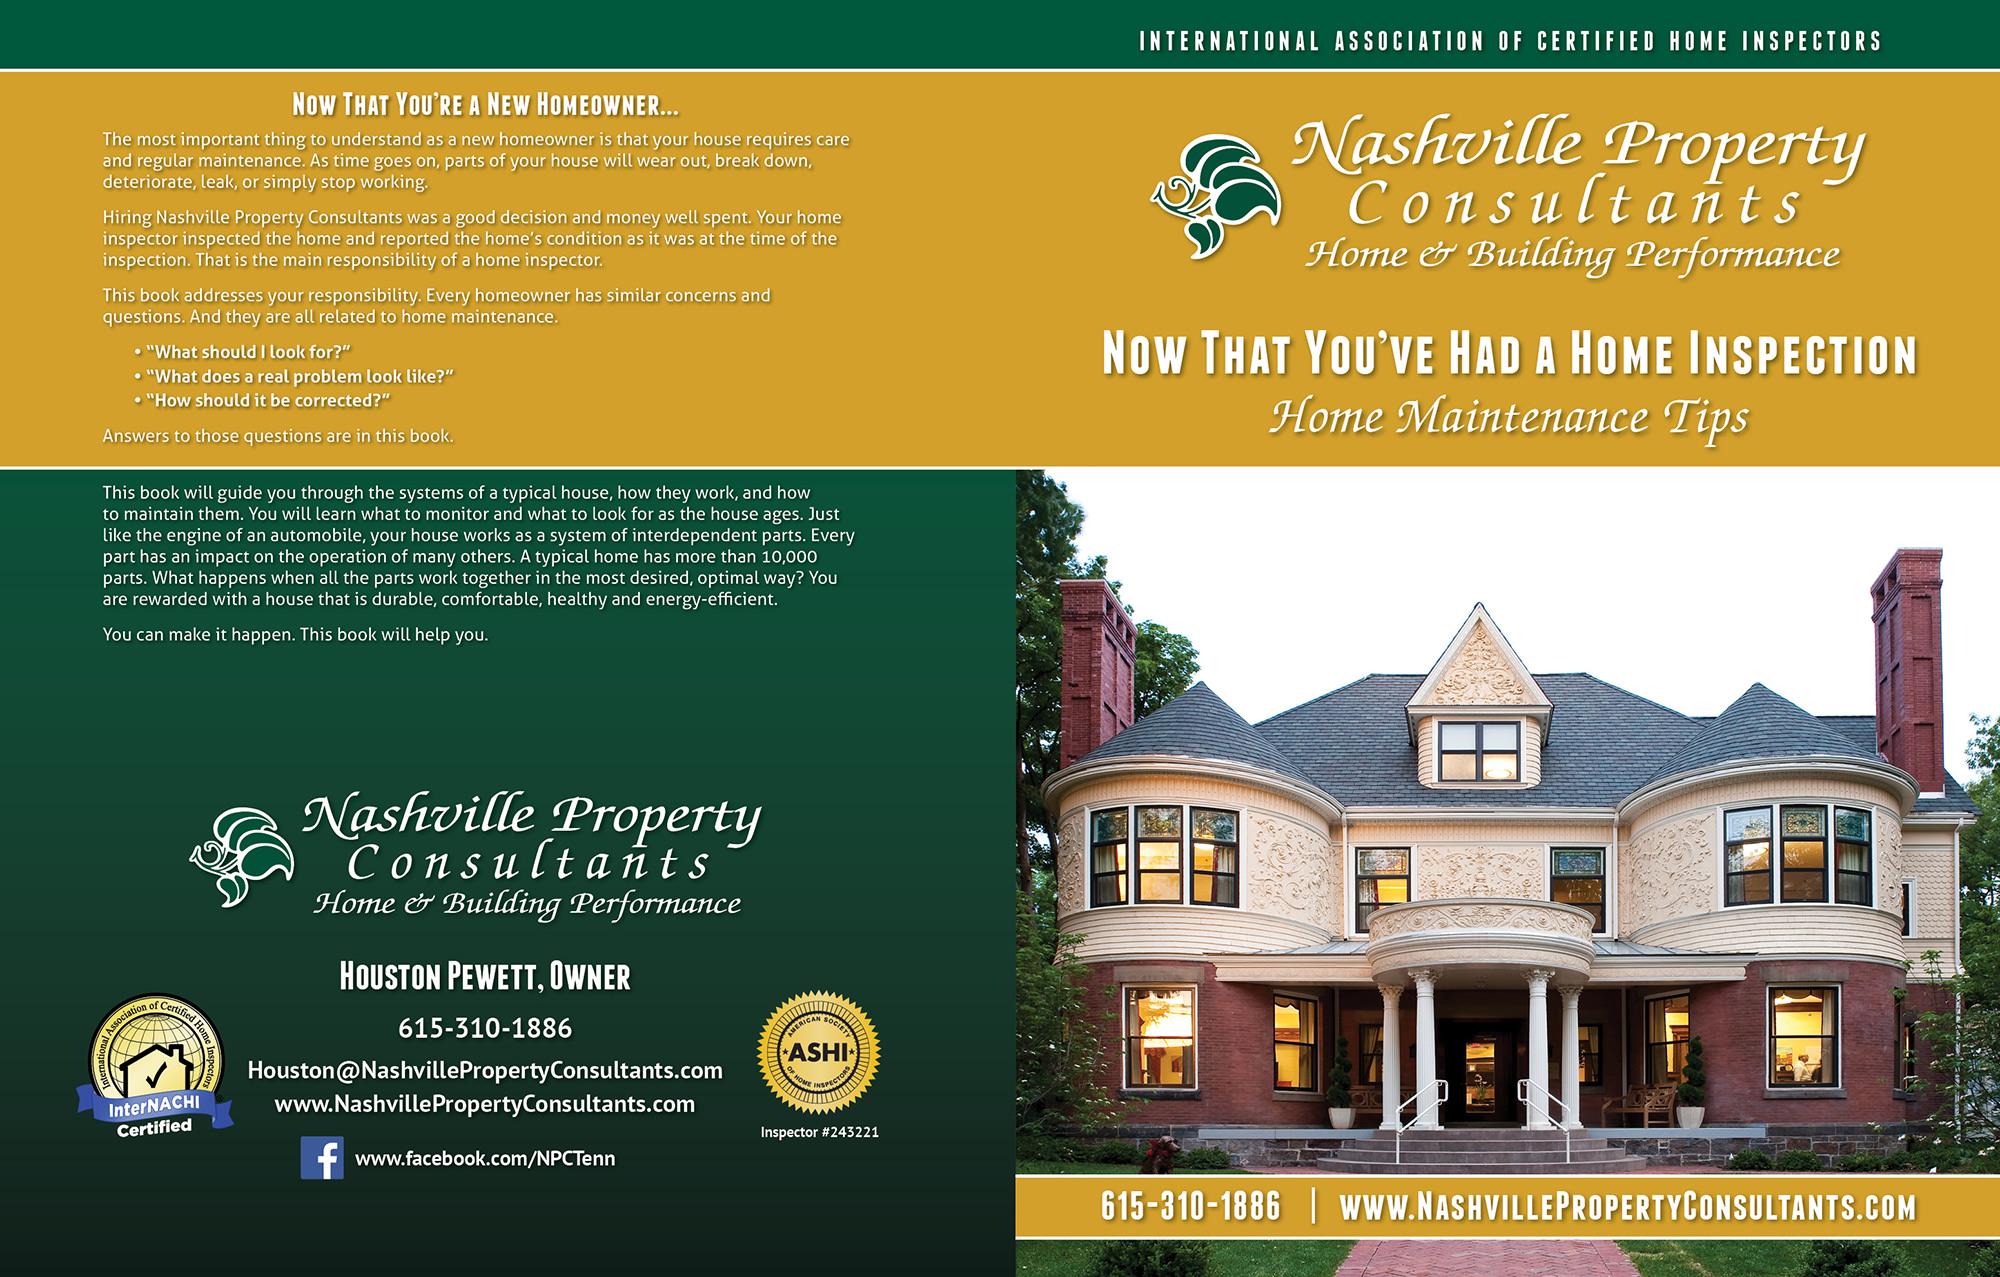 Custom Home Maintenance Book for Nashville Property Consultants.